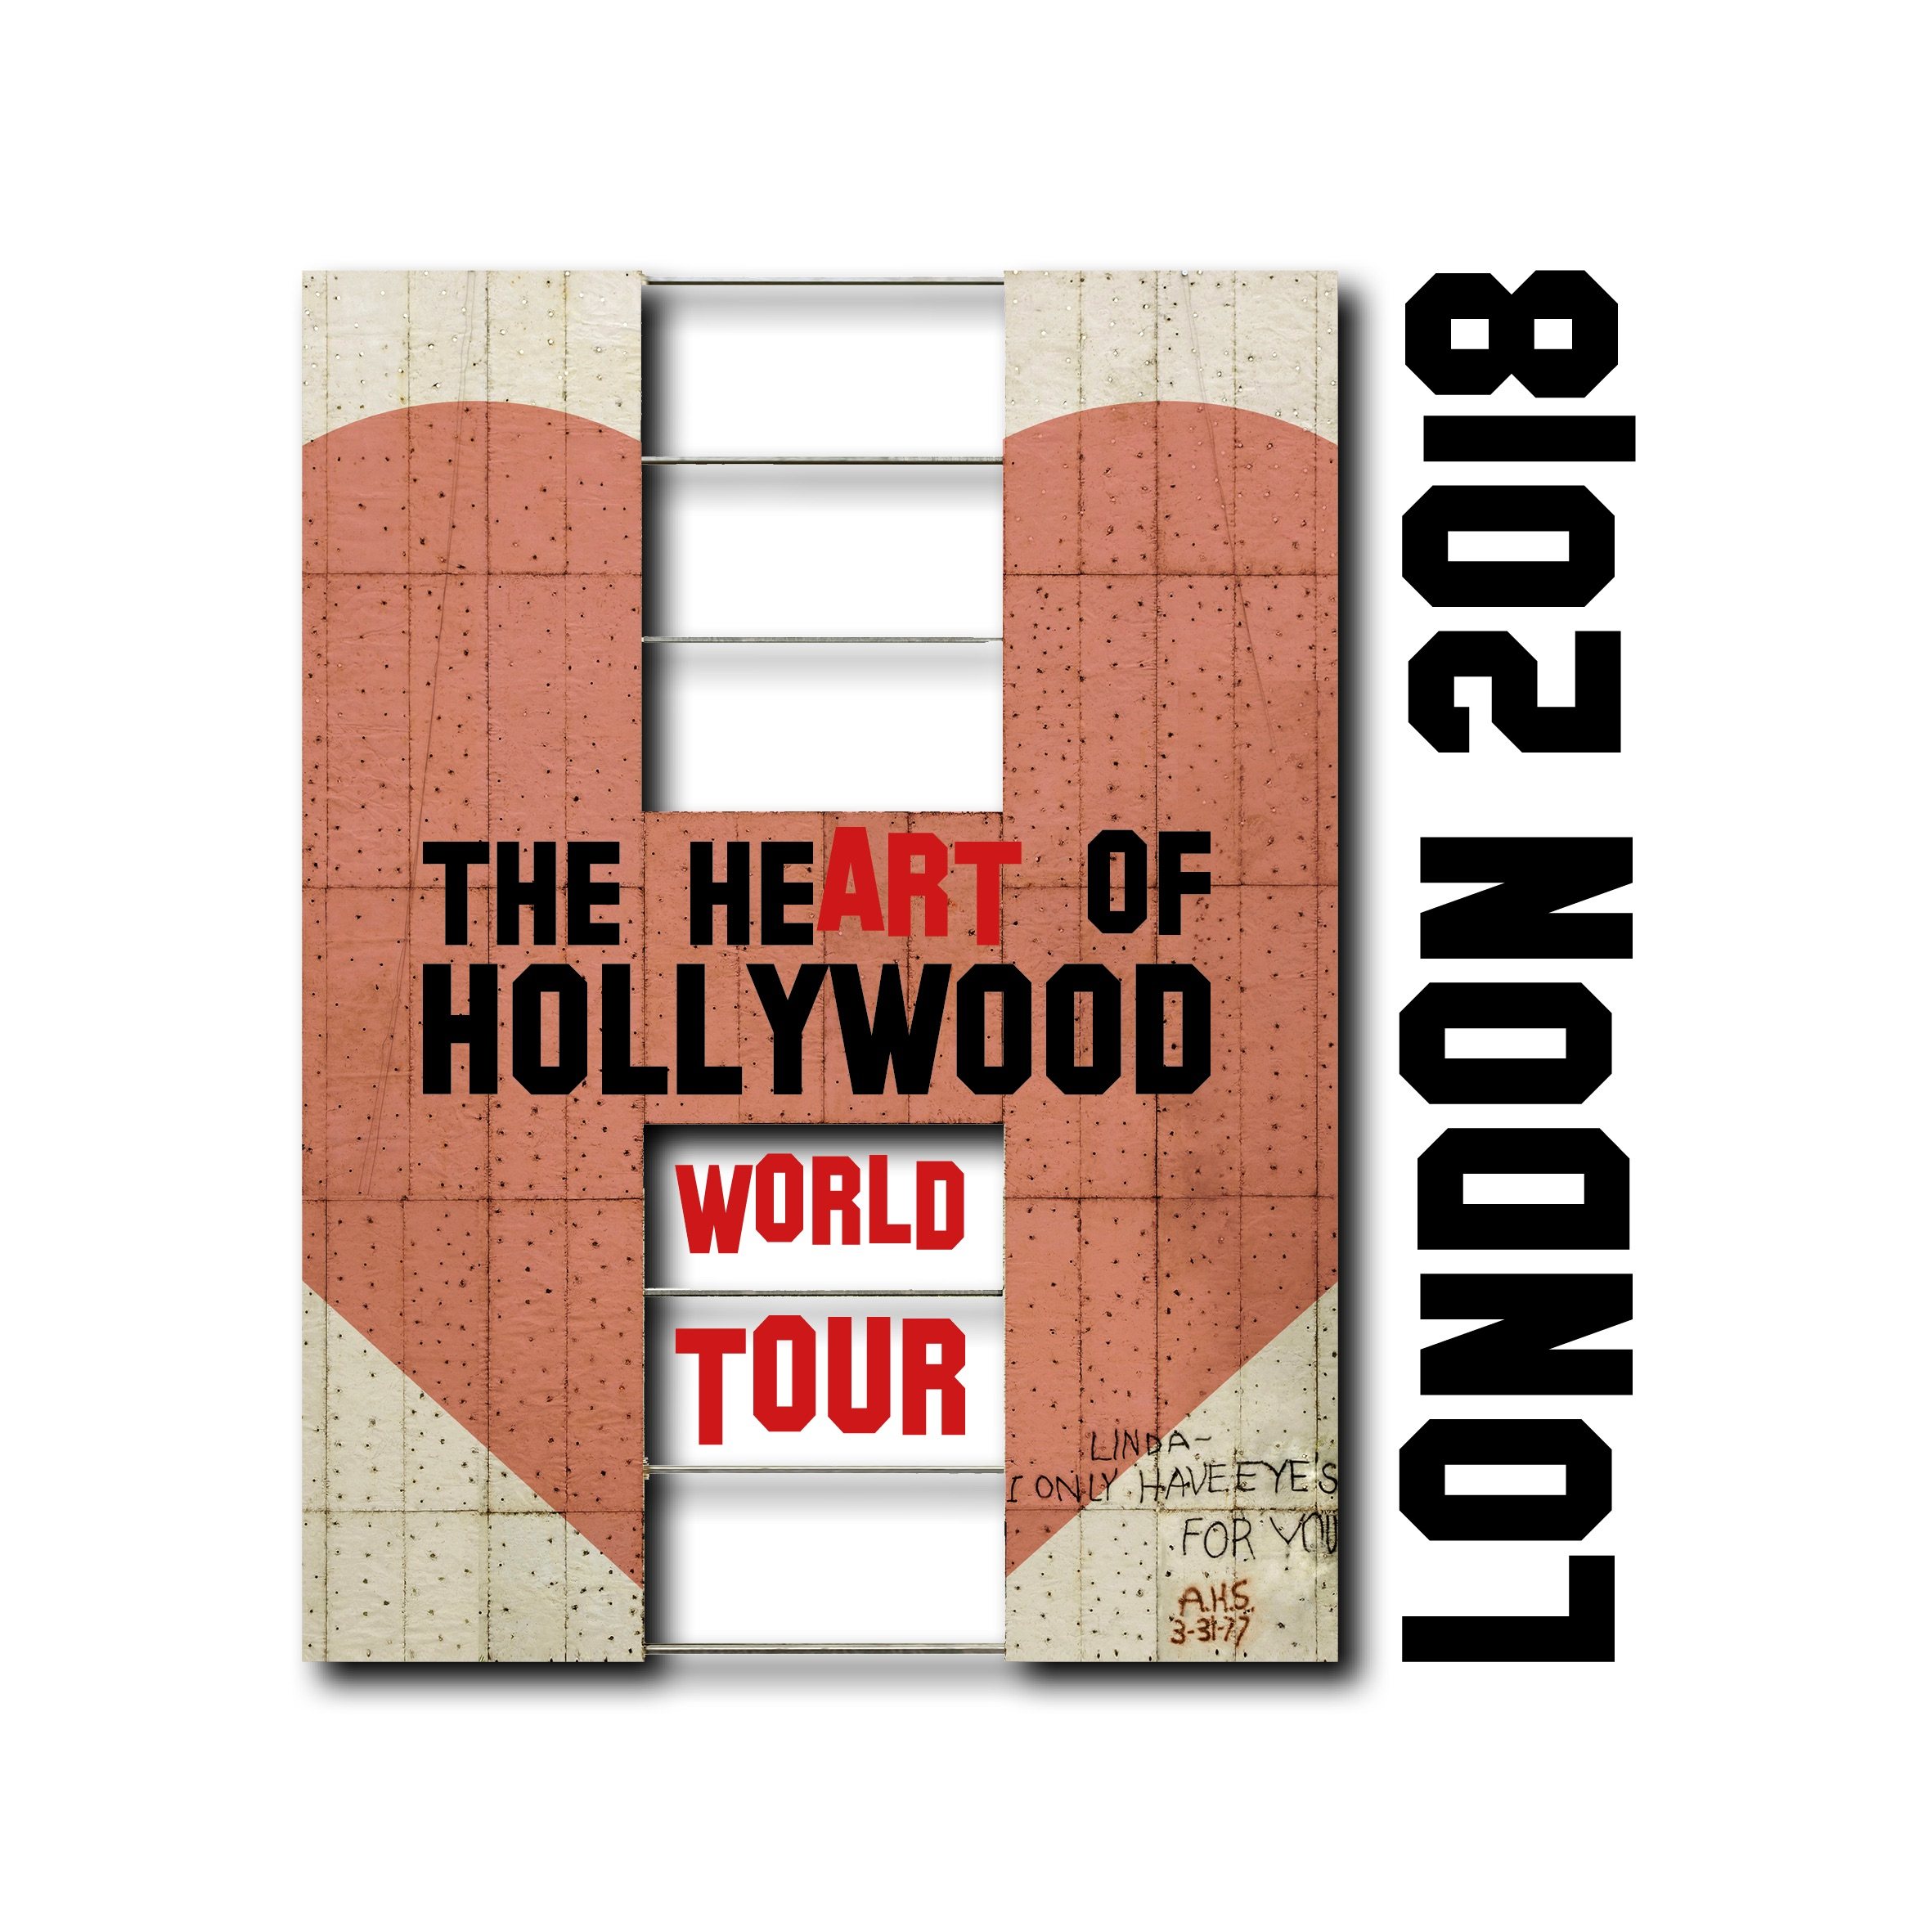 The Heart of Hollywood Tour